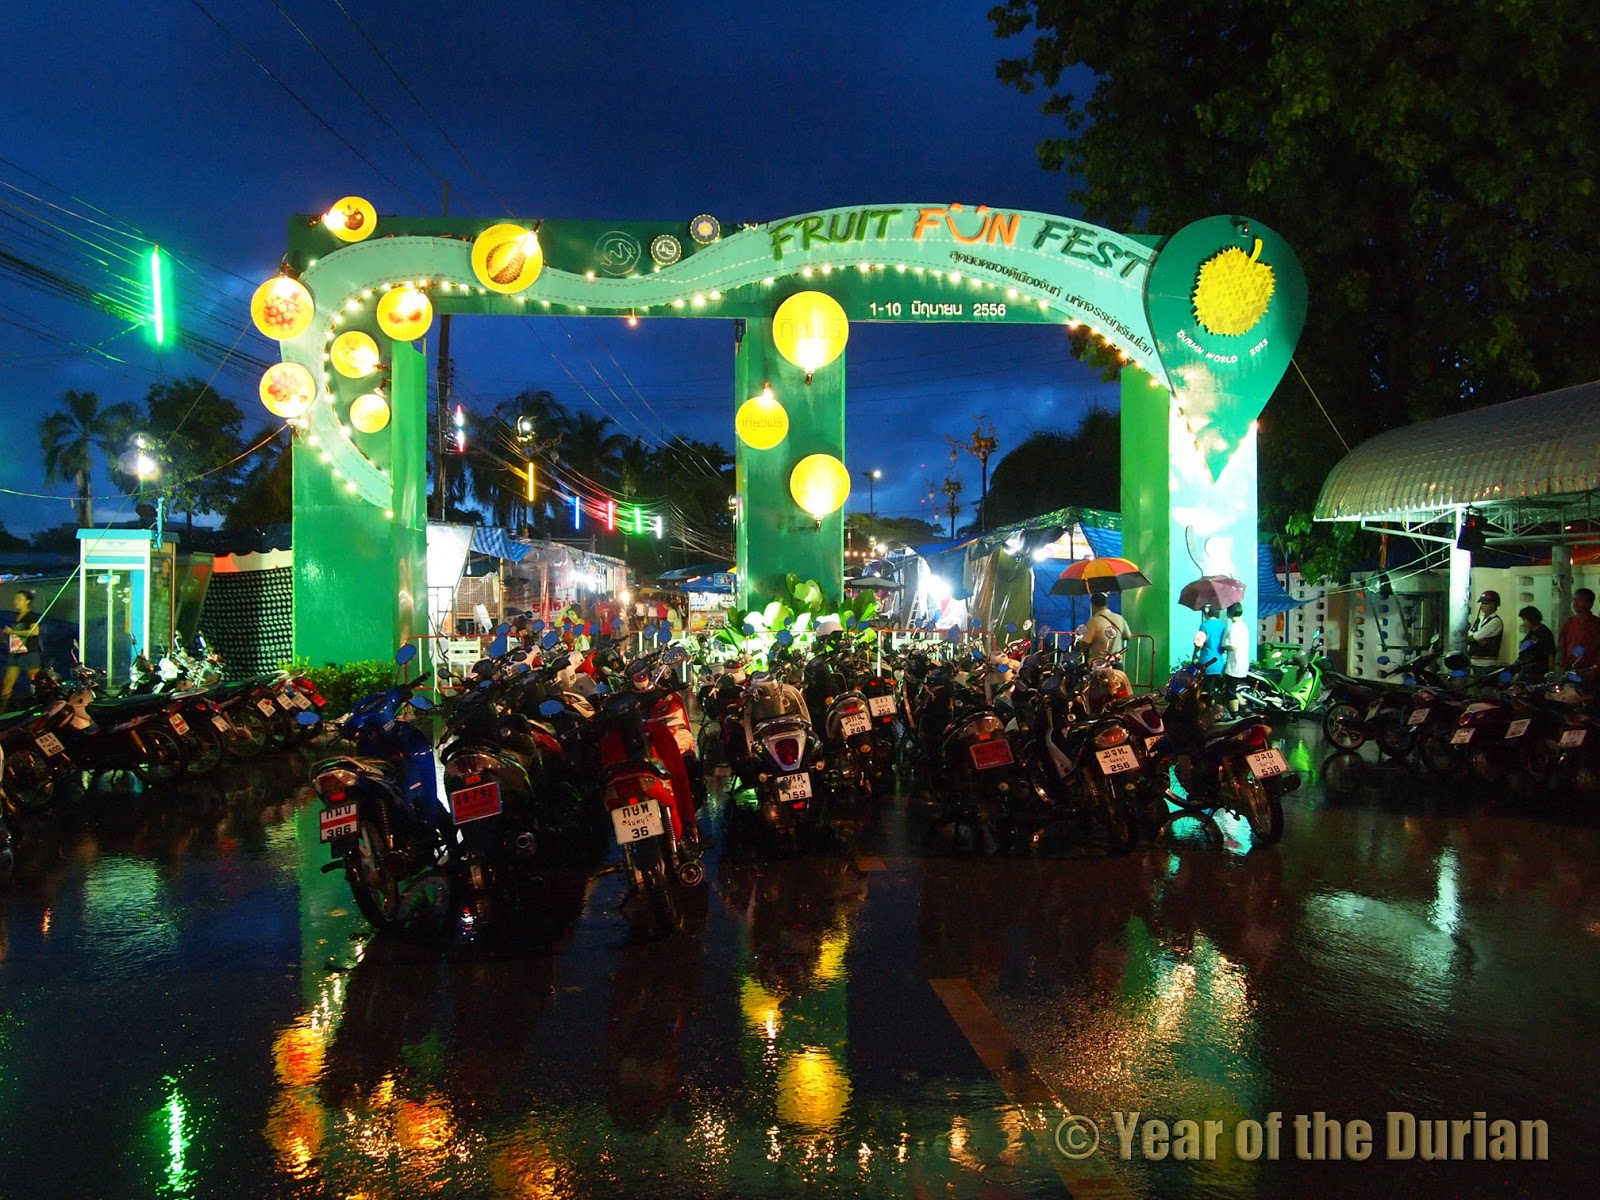 essay on n festival the importance of n festivals making life  chanthaburi durian festival in the rain photo essay chanthaburi durian festival in the rain photo essay